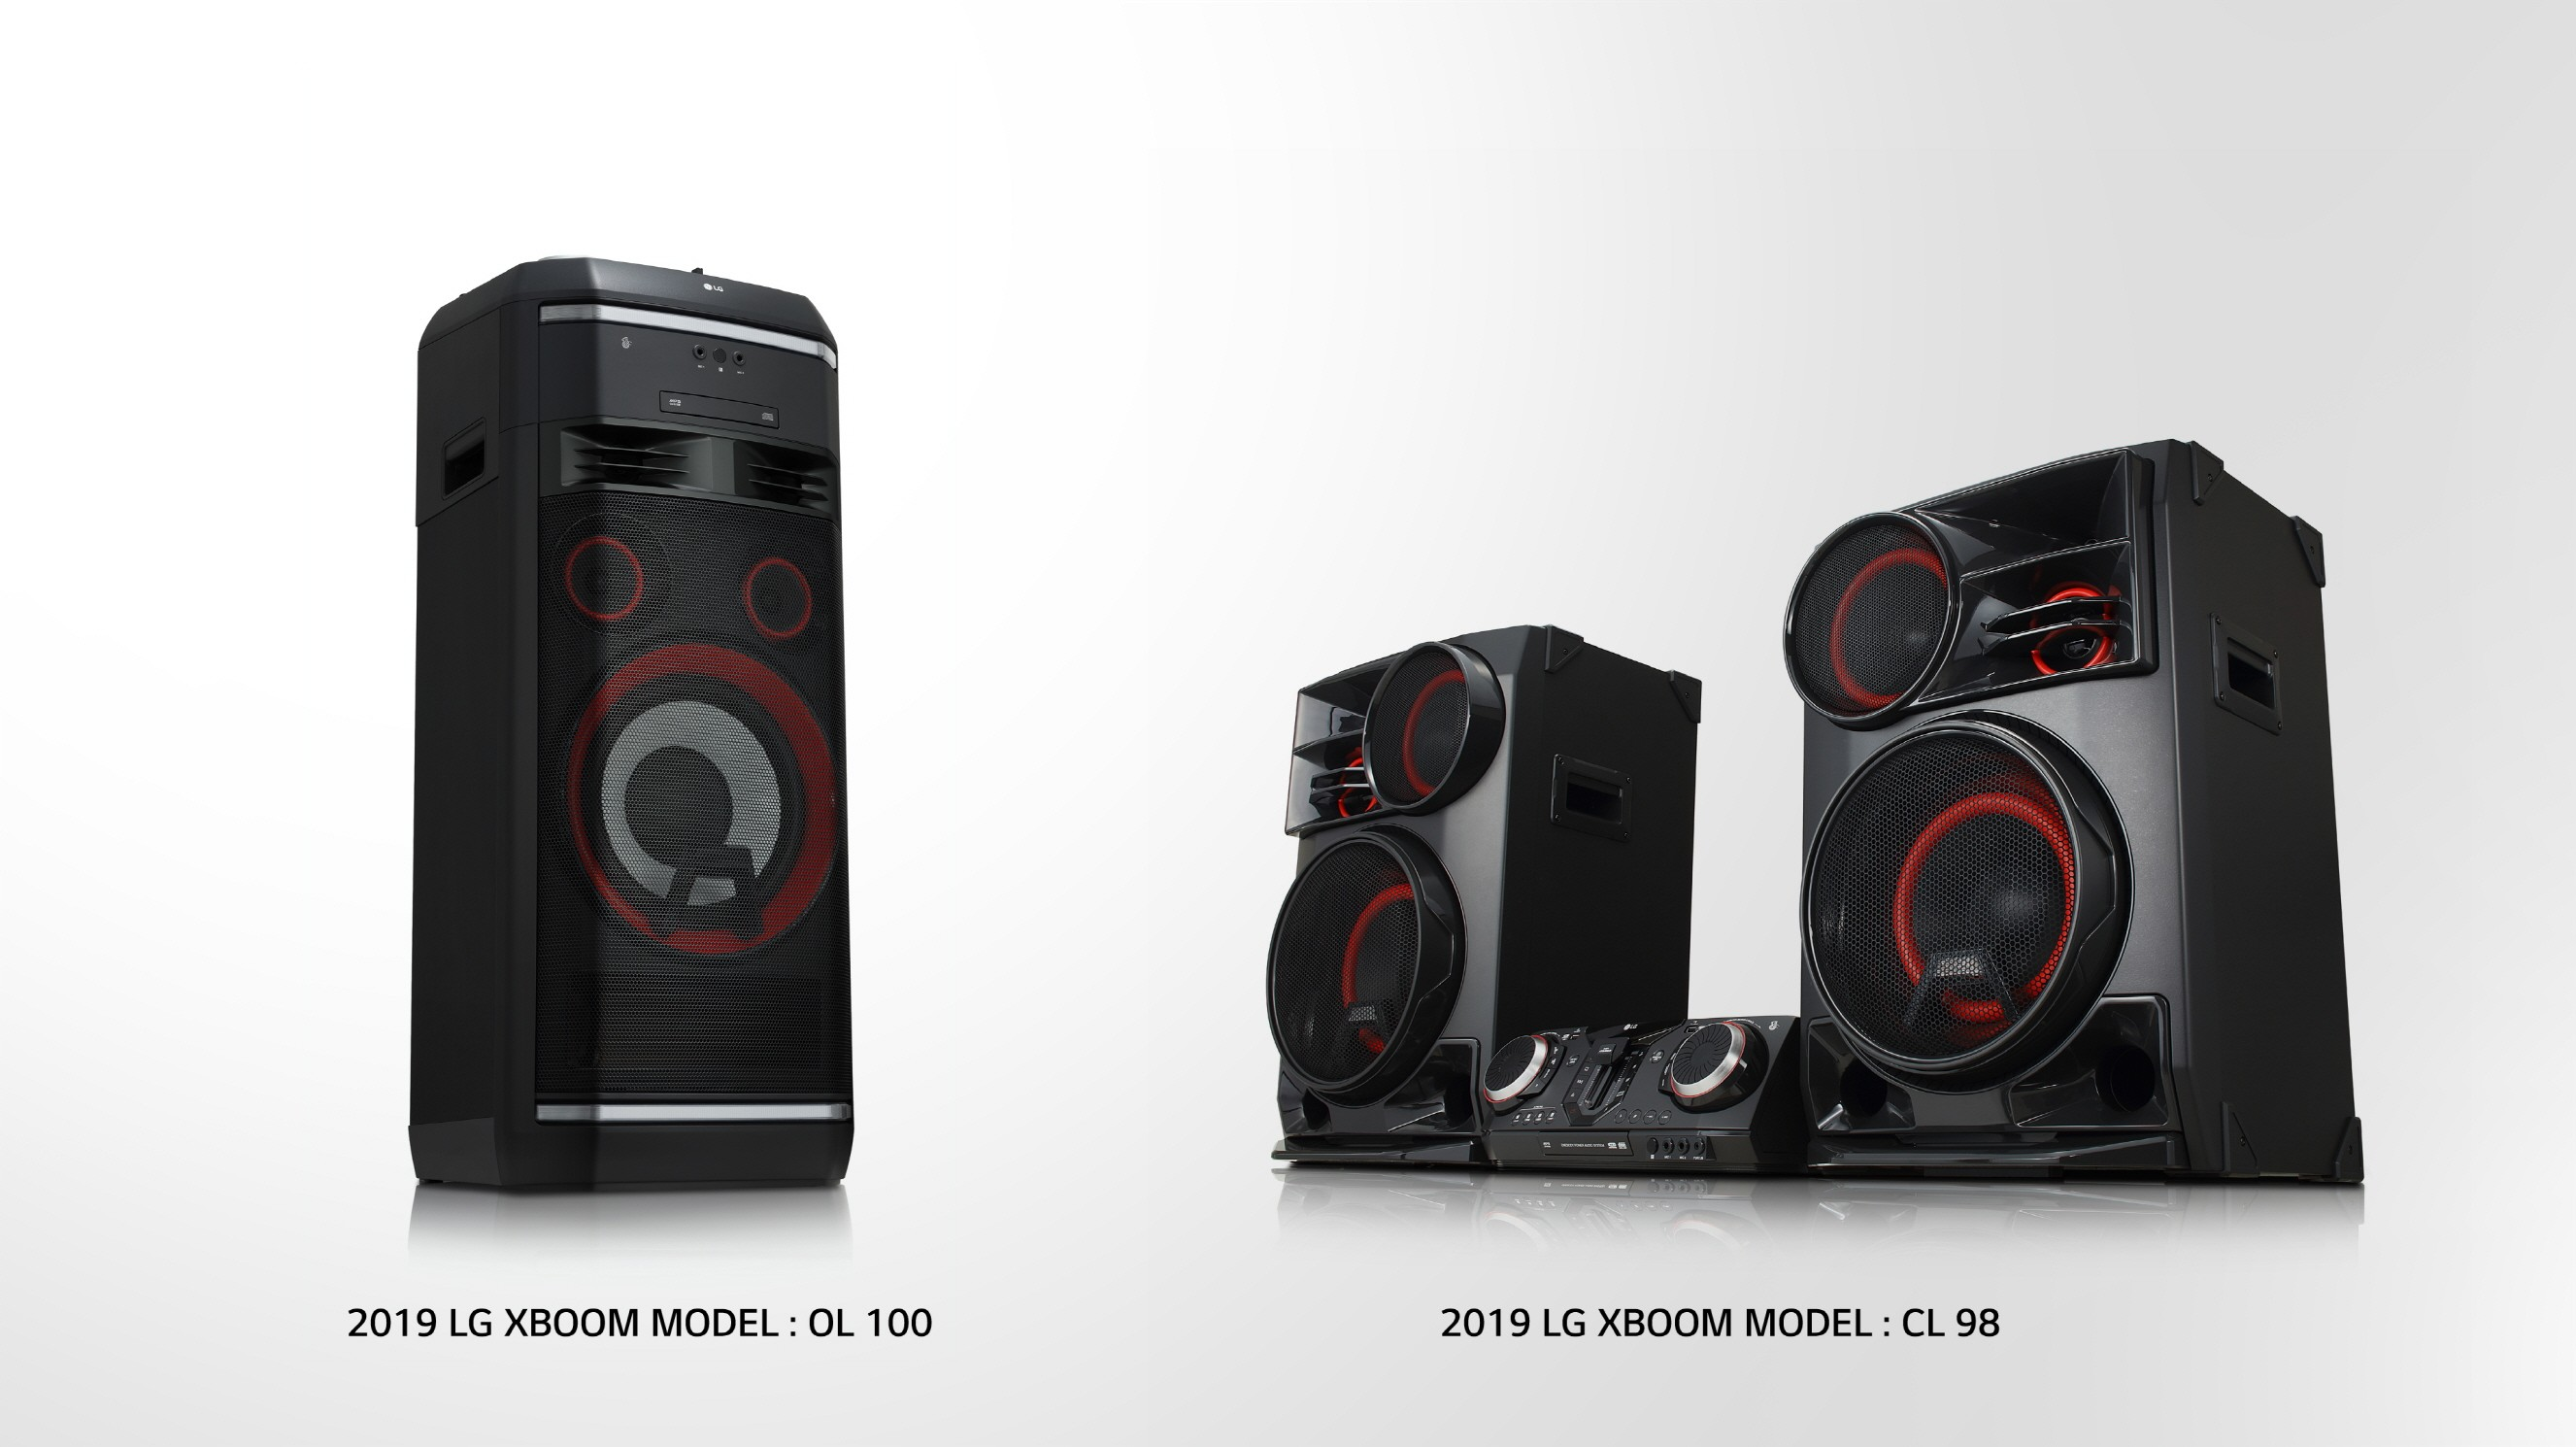 LG's new XBOOM speakers are set to party